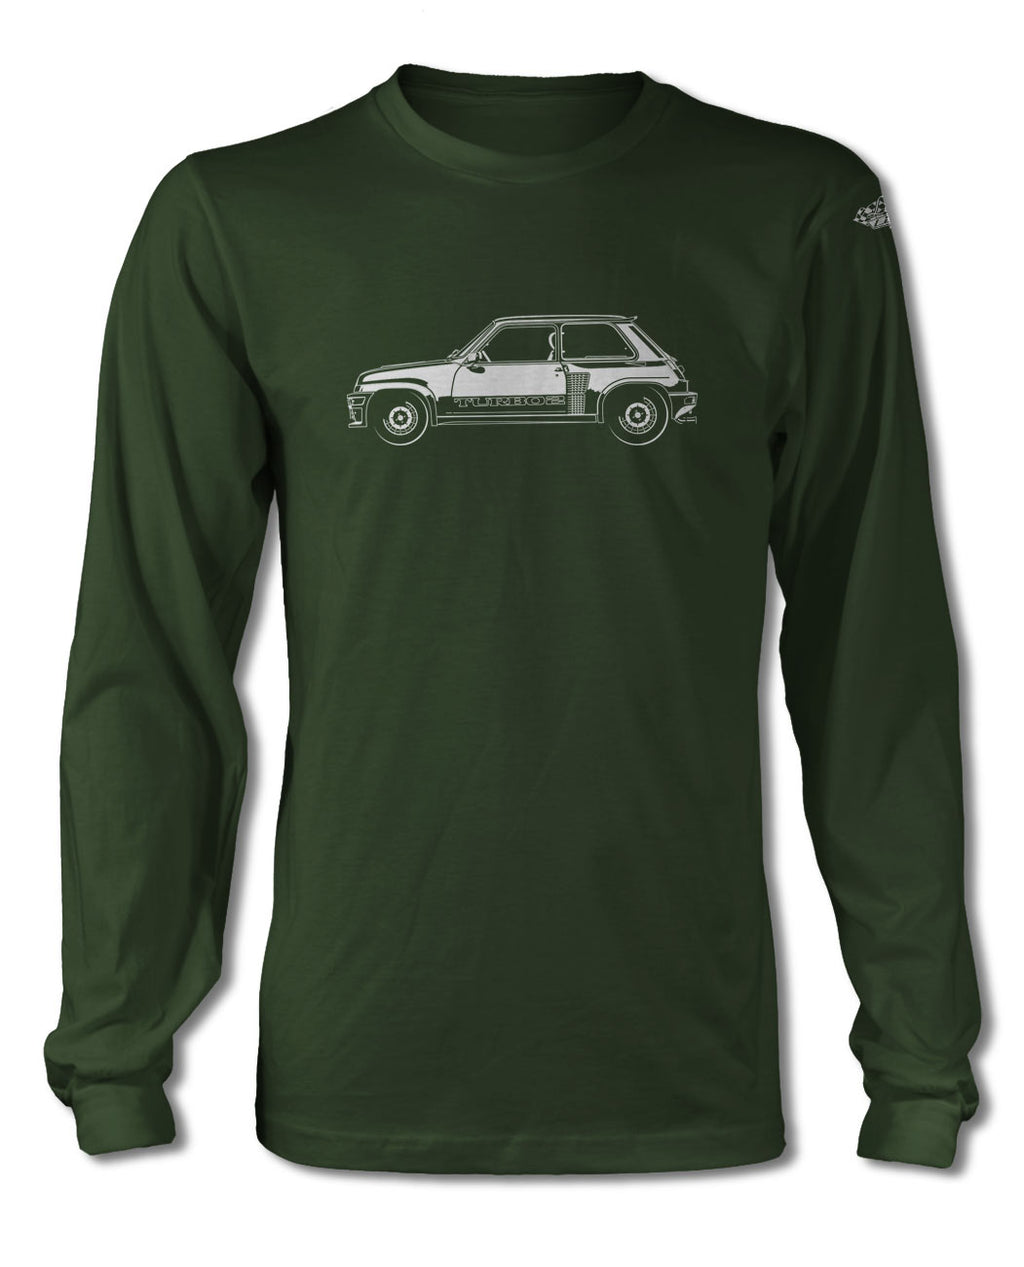 Renault R5 Turbo 2 1980 – 1986 T-Shirt - Long Sleeves - Side View